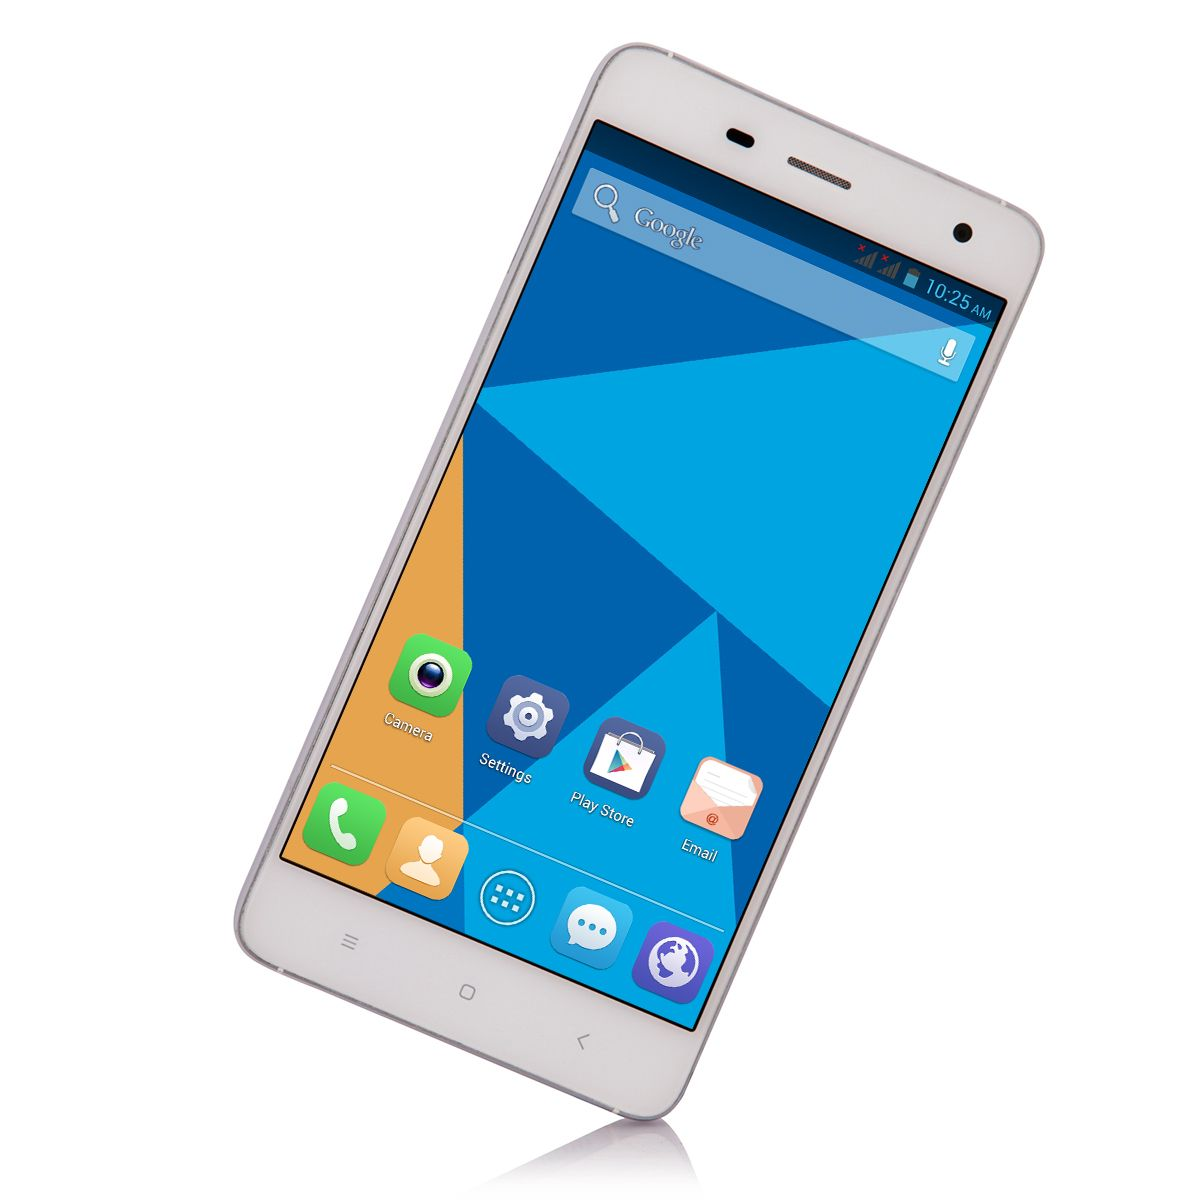 HITMAN DG850-white | HITMAN DG850 | Phone, Android 4, 3 mobile